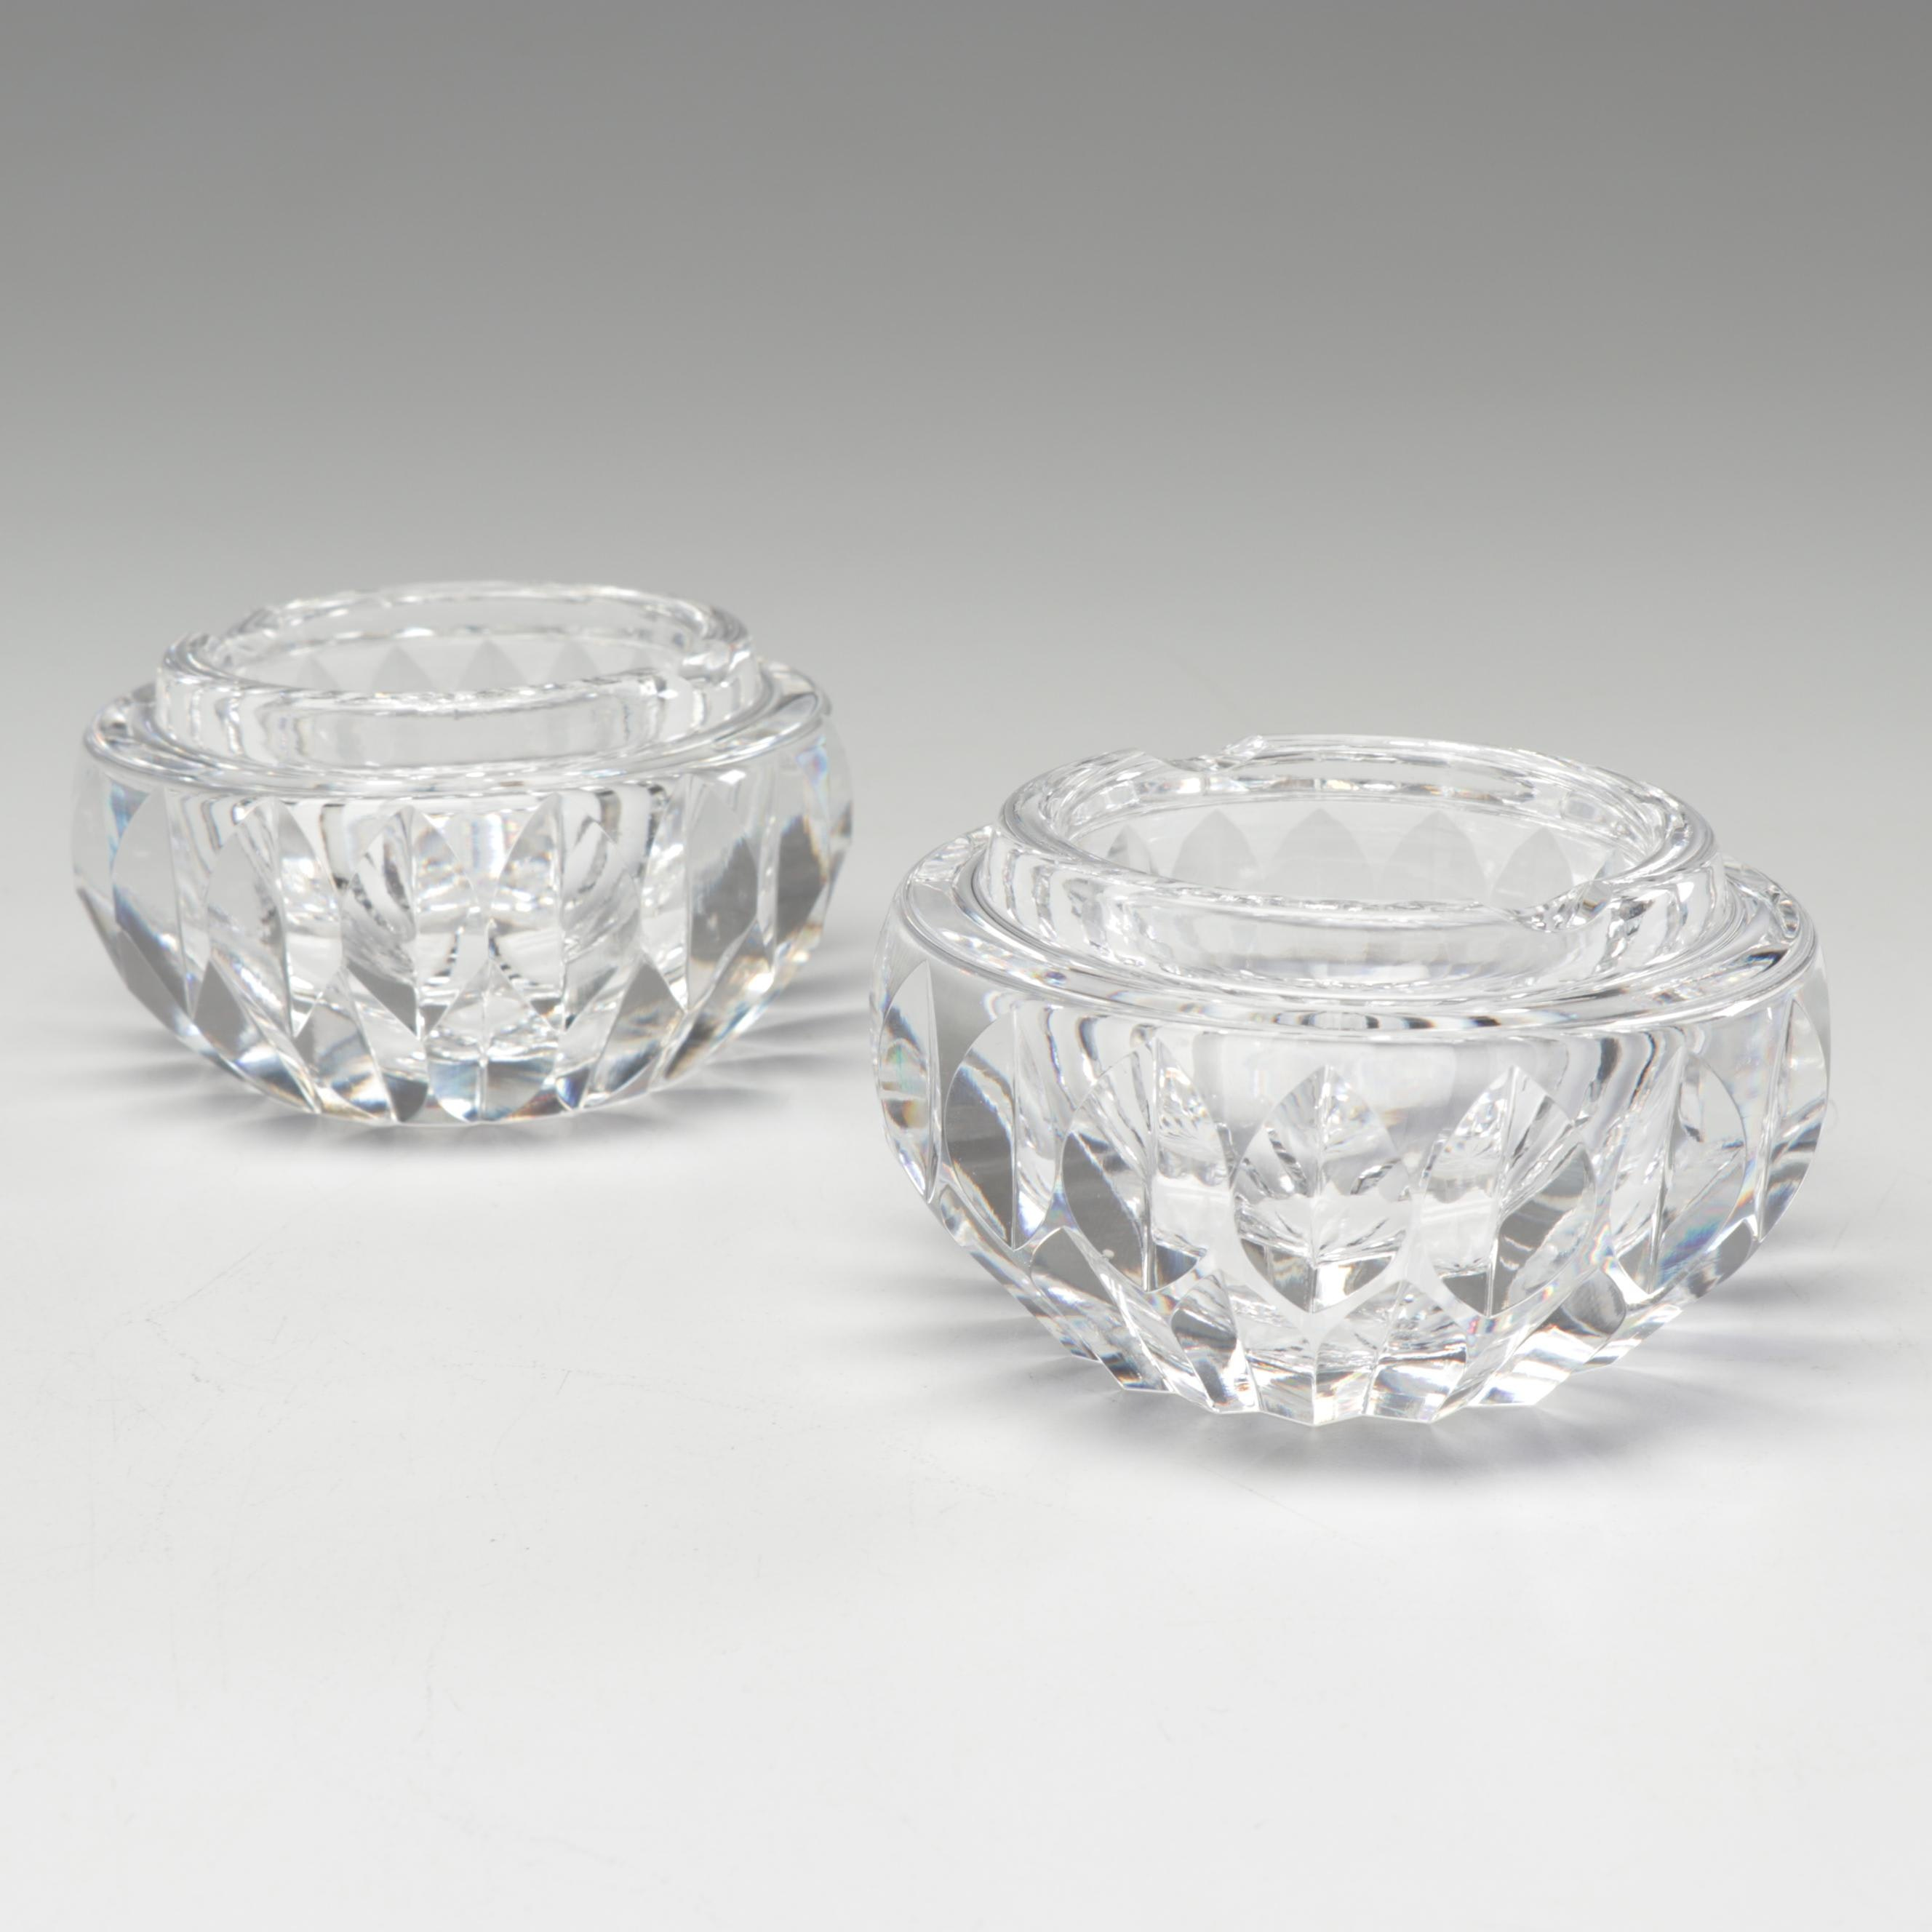 Waterford Crystal Ashtrays, Late 20th Century